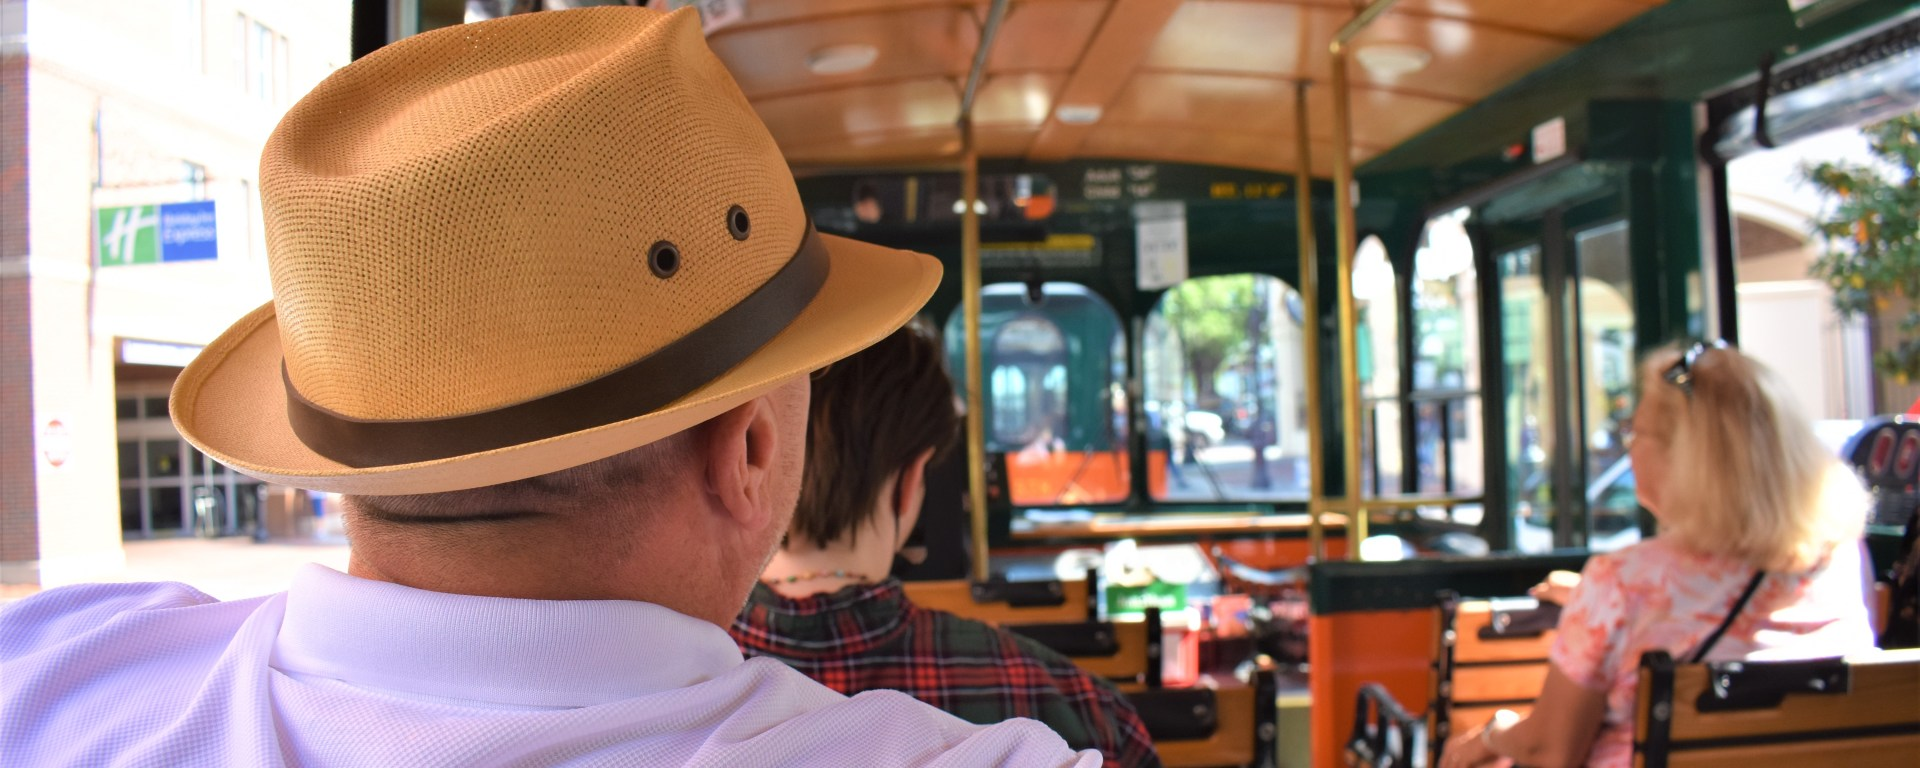 Man (Mr Martini) sitting on a Savannah trolley tour. It is his back side. He is wearing a panama hat.